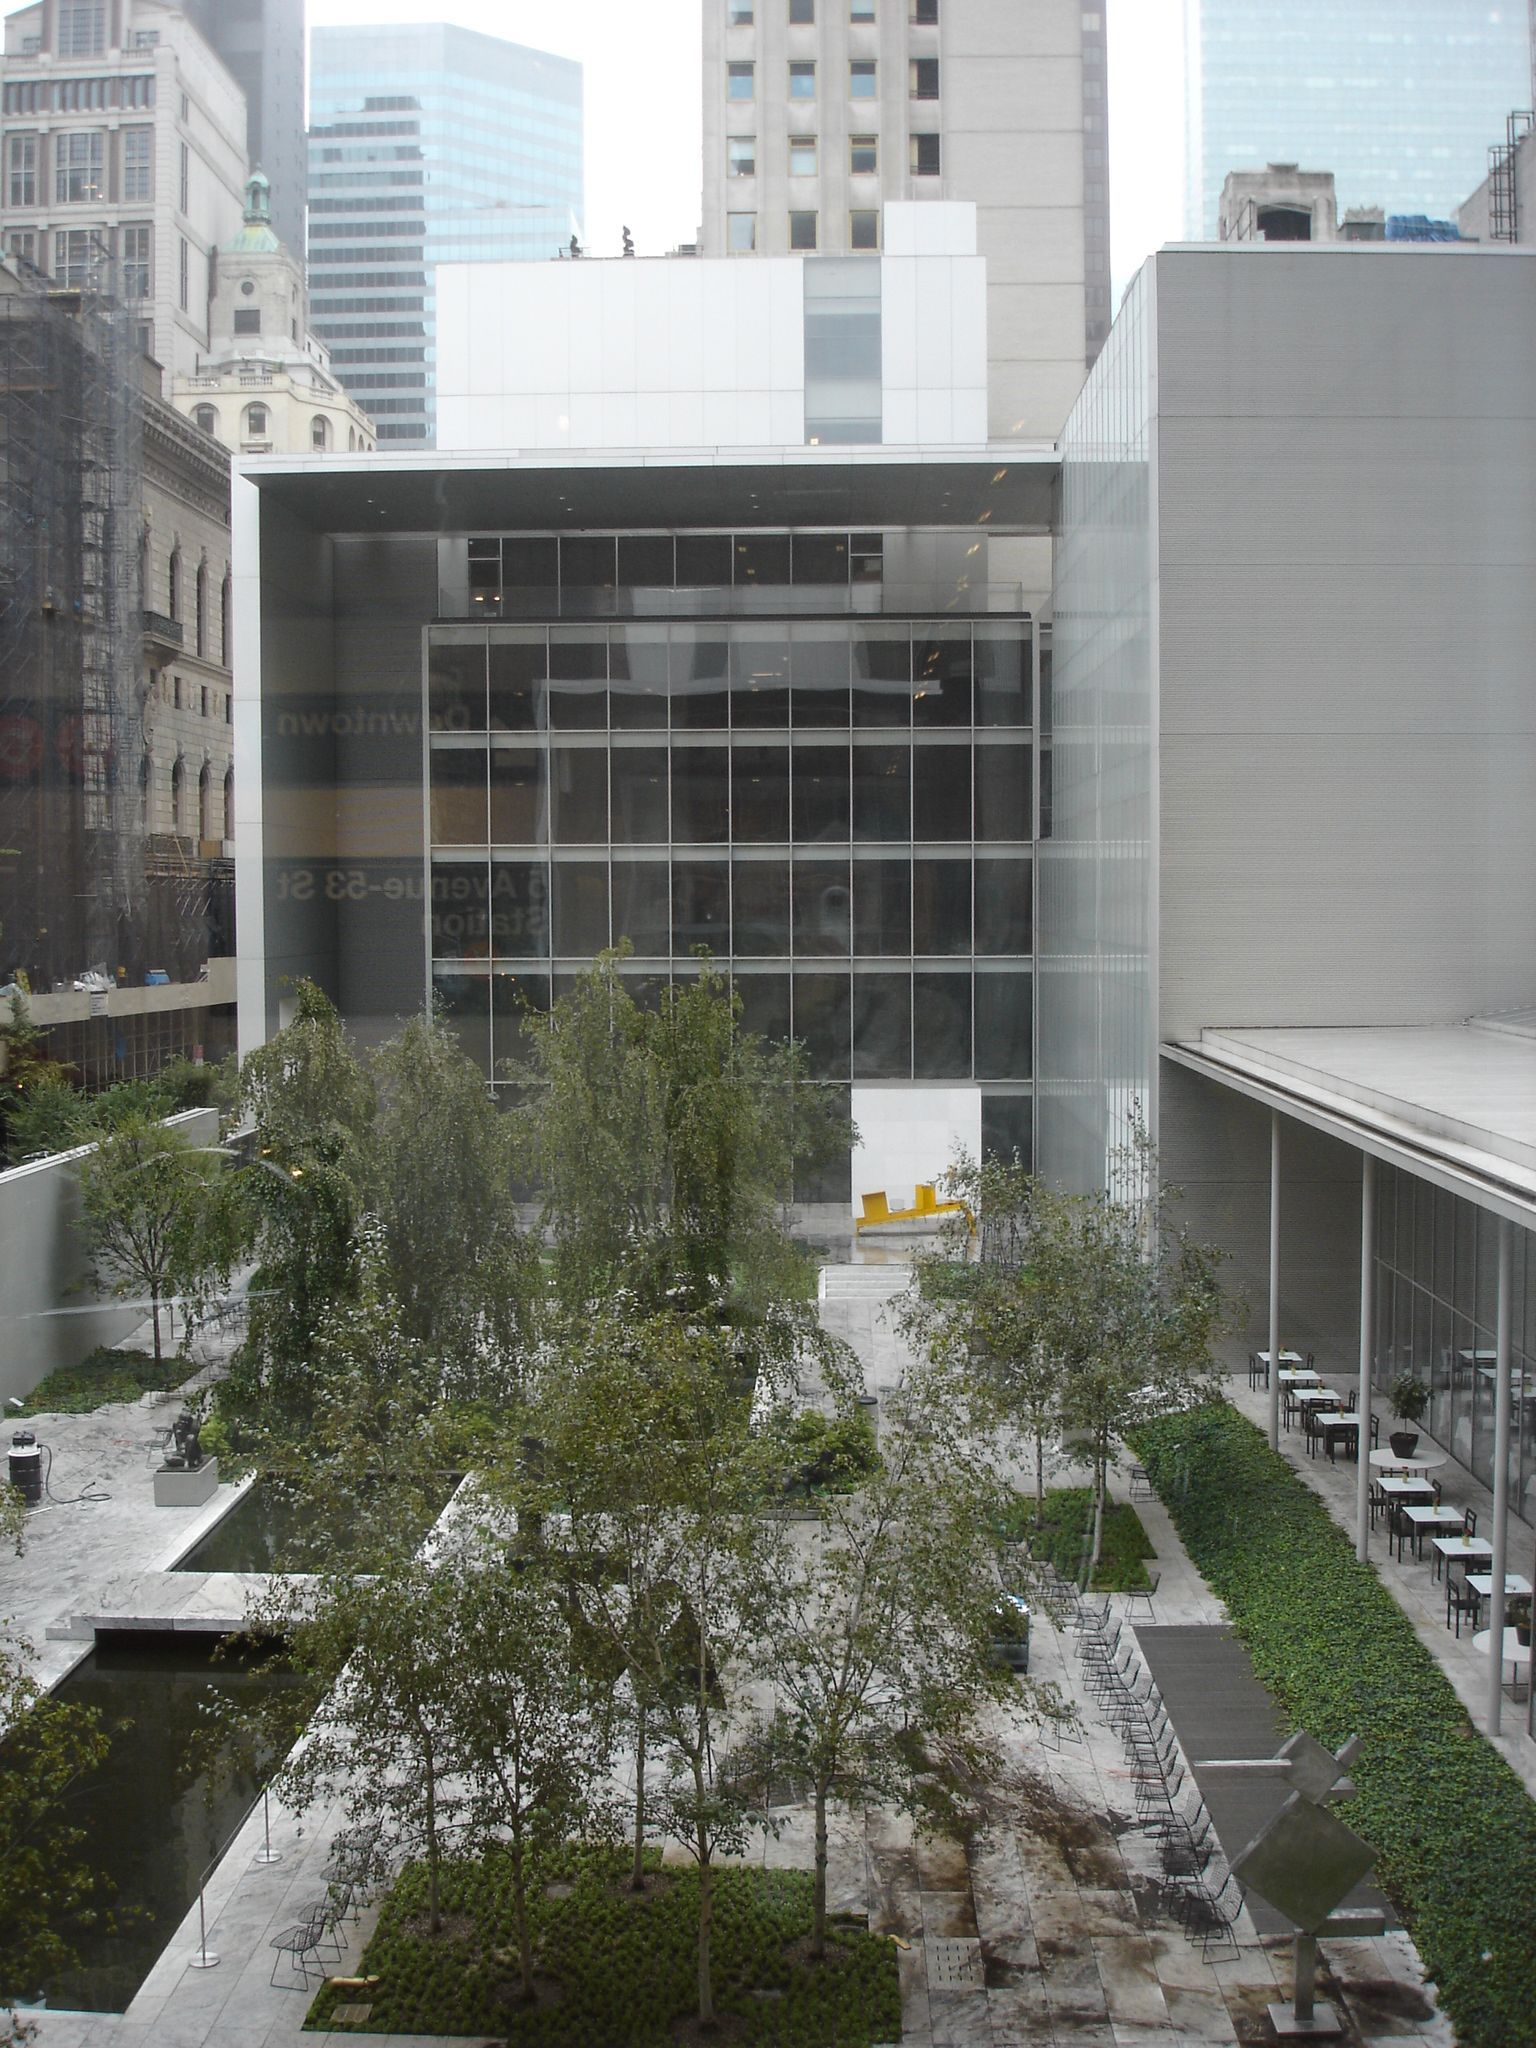 The Museum Of Modern Art Moma Is An Art Museum In Midtown Manhattan In New York City On 53rd Str Museum Of Modern Art New York Architecture New York Museums